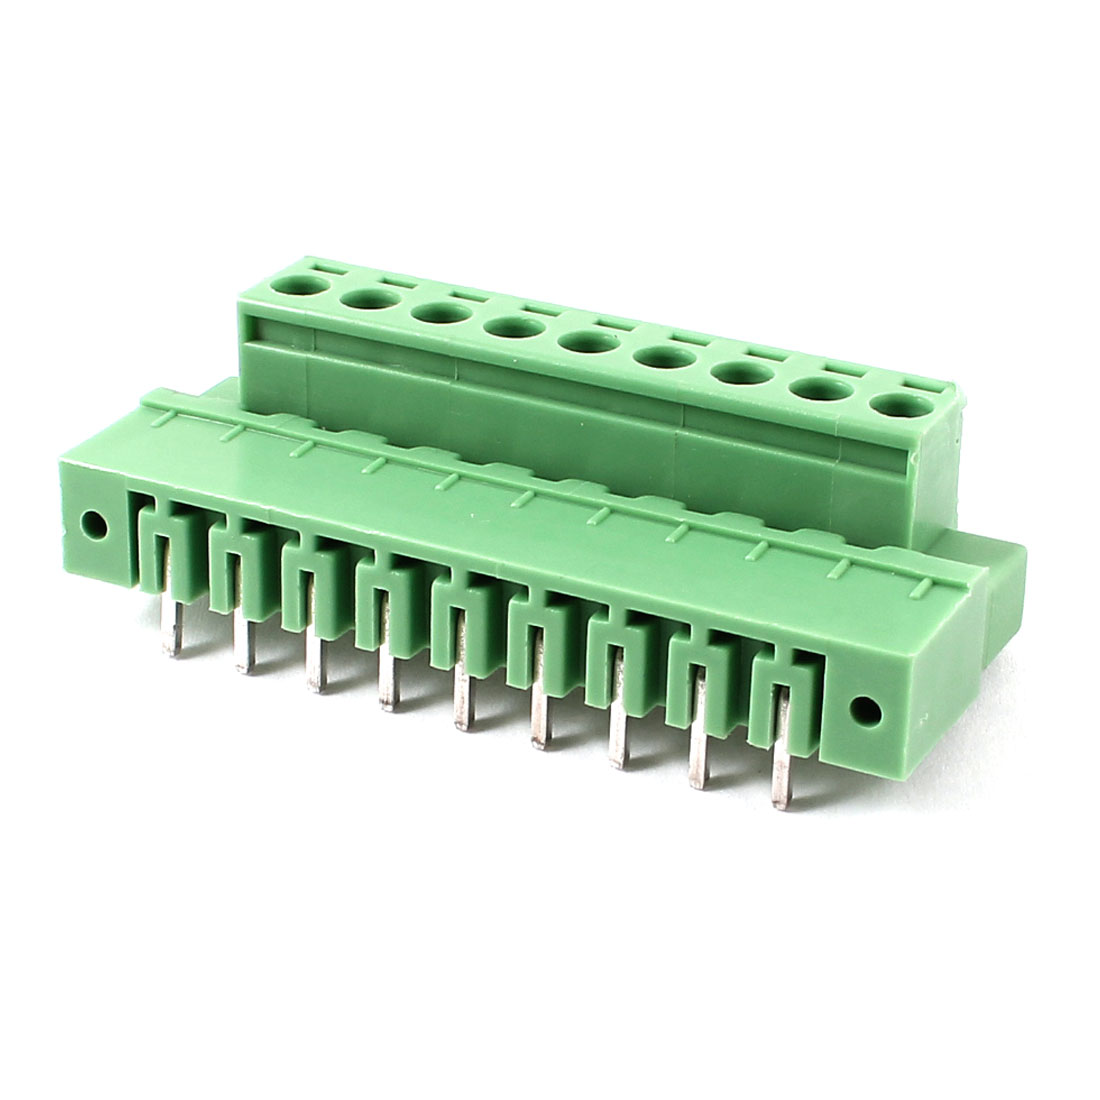 Pair AC 300V 10A 5.08mm Pitch 9 Pin Screw Pluggable Terminal Block